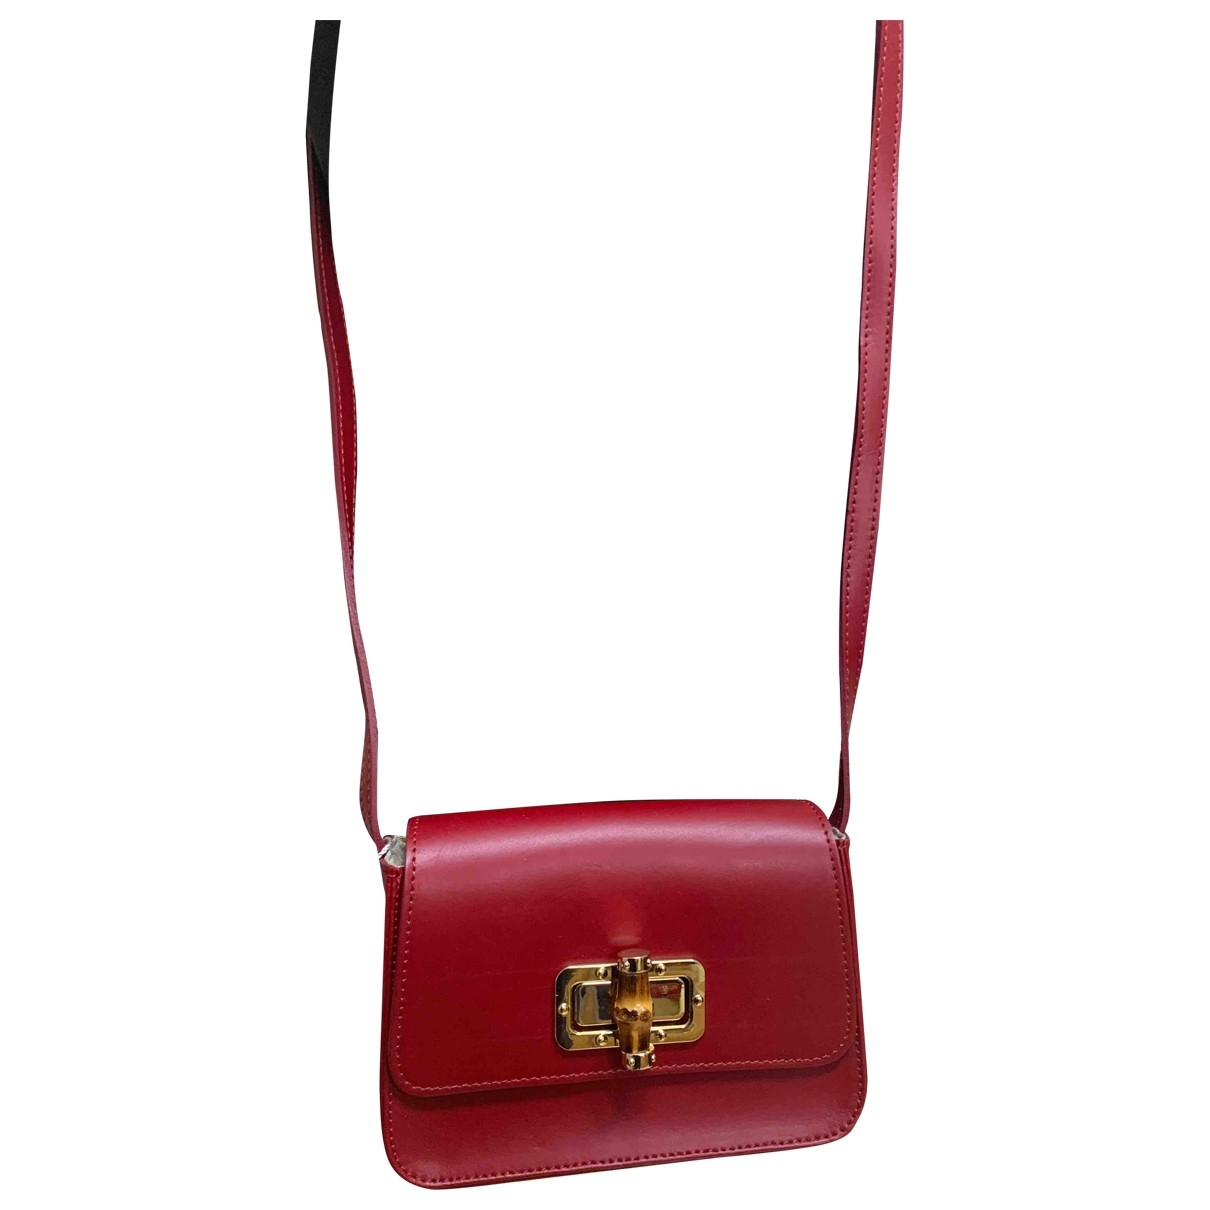 Intrend \N Red Leather handbag for Women \N